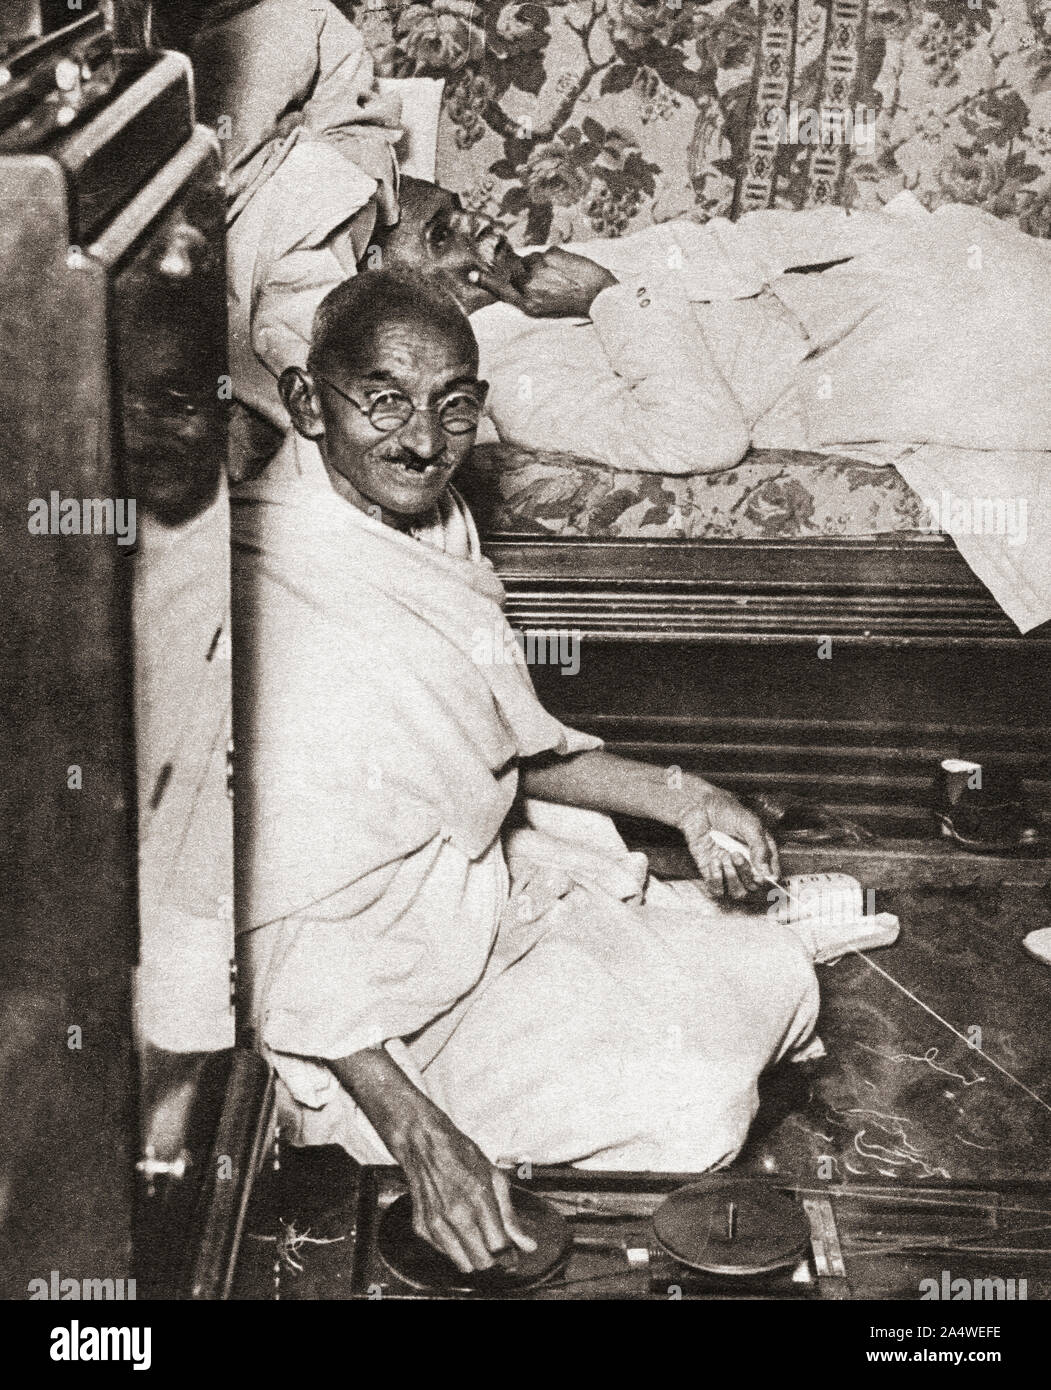 Mohandas Karamchand Gandhi, aka Mahatma Gandhi, 1869 – 1948. Indian activist, leader of the Indian independence movement against British rule.  Seen here at the Round Table Conference, 1931. From The Pageant of the Century, published 1934. Stock Photo